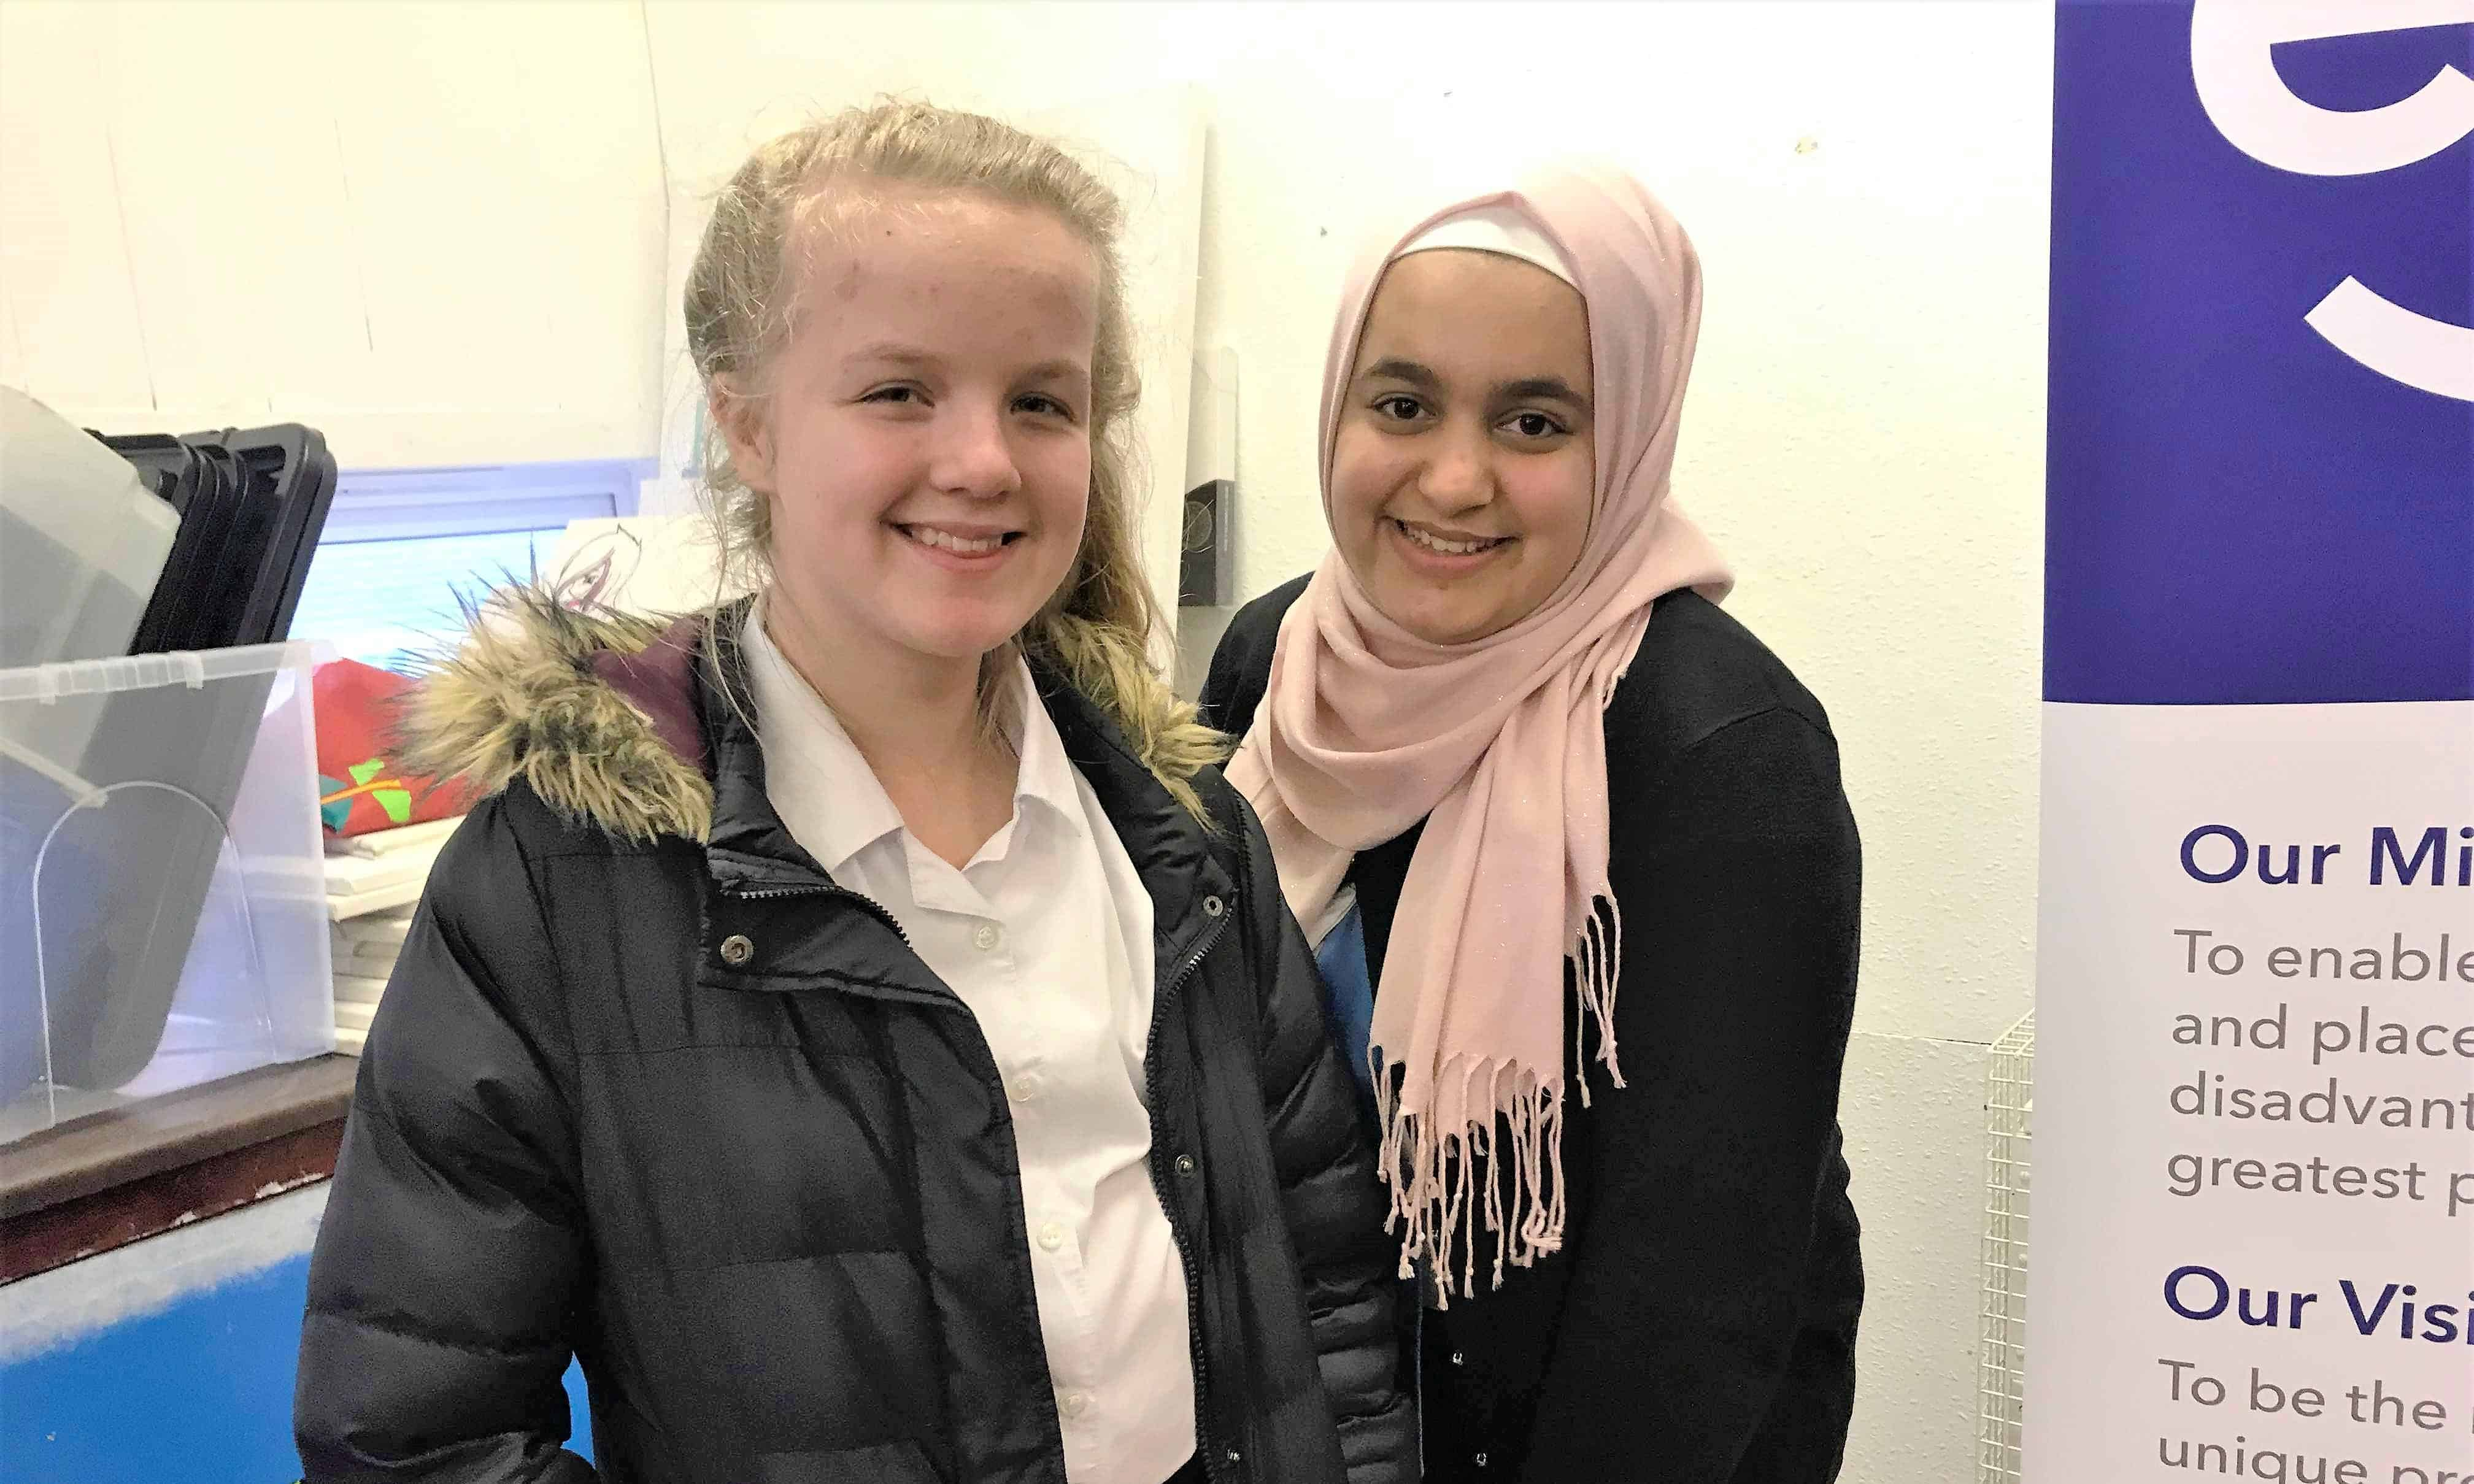 Eilidh and Amal, two girls from different religious backgrounds, stand side-by-side.